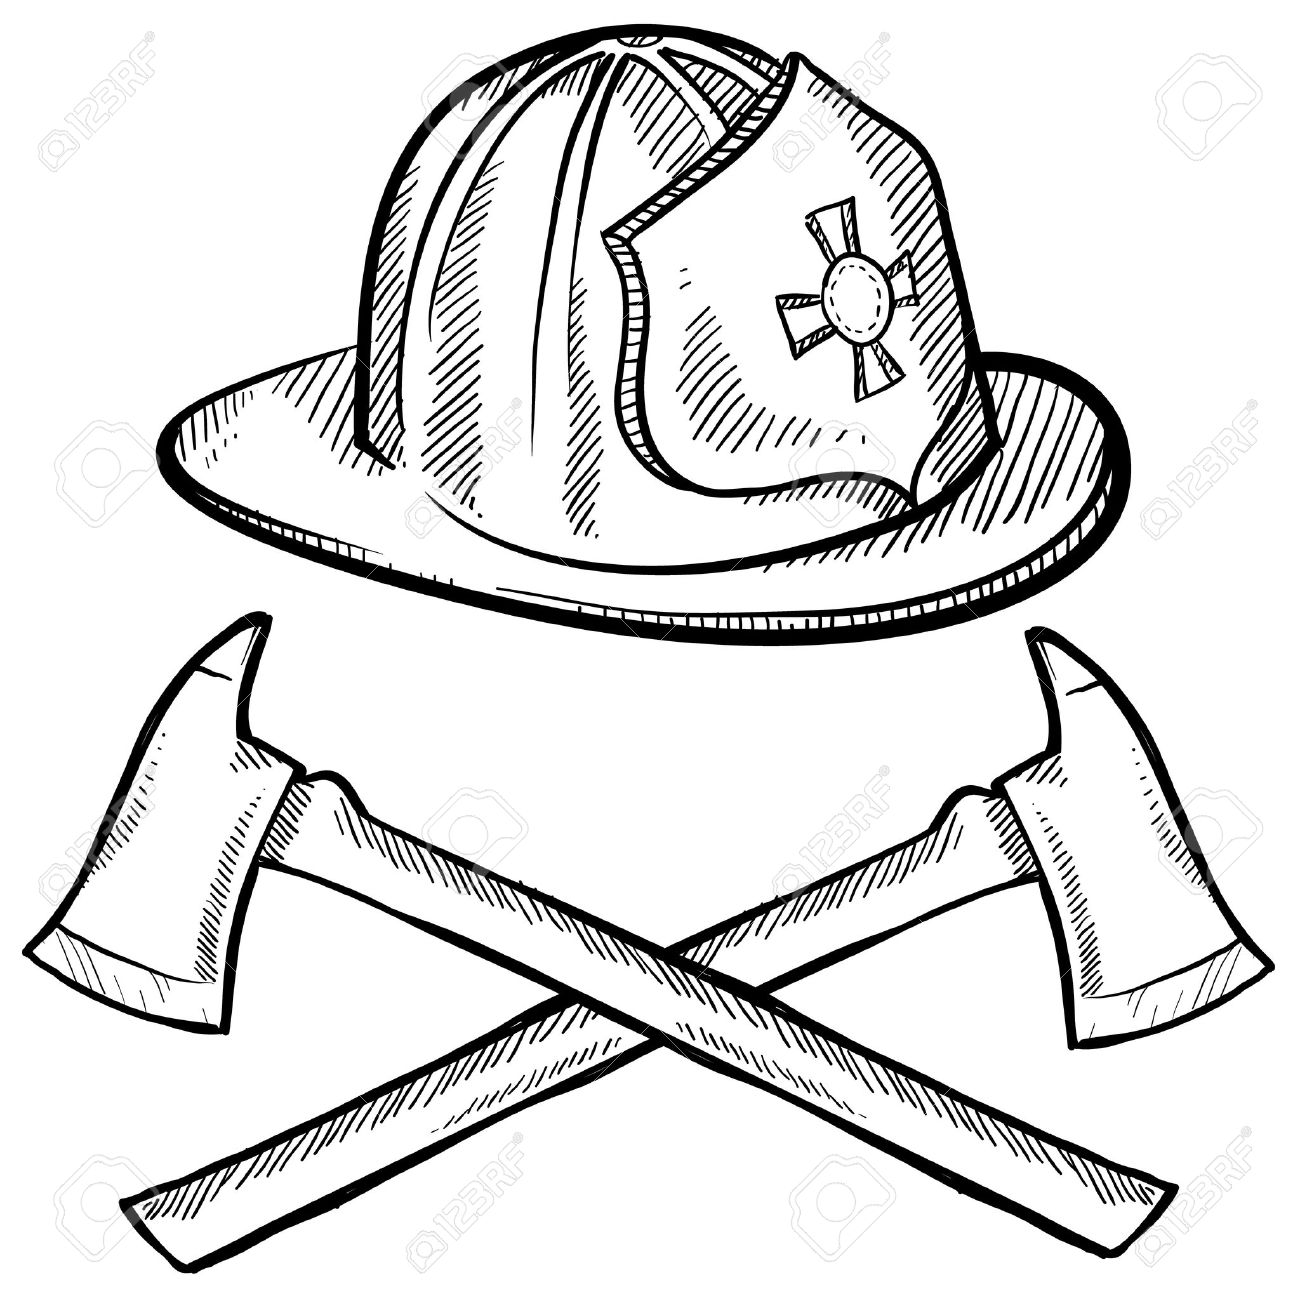 1300x1300 Doodle Style Firefighter's Helmet And Axes In Vector Format Stock